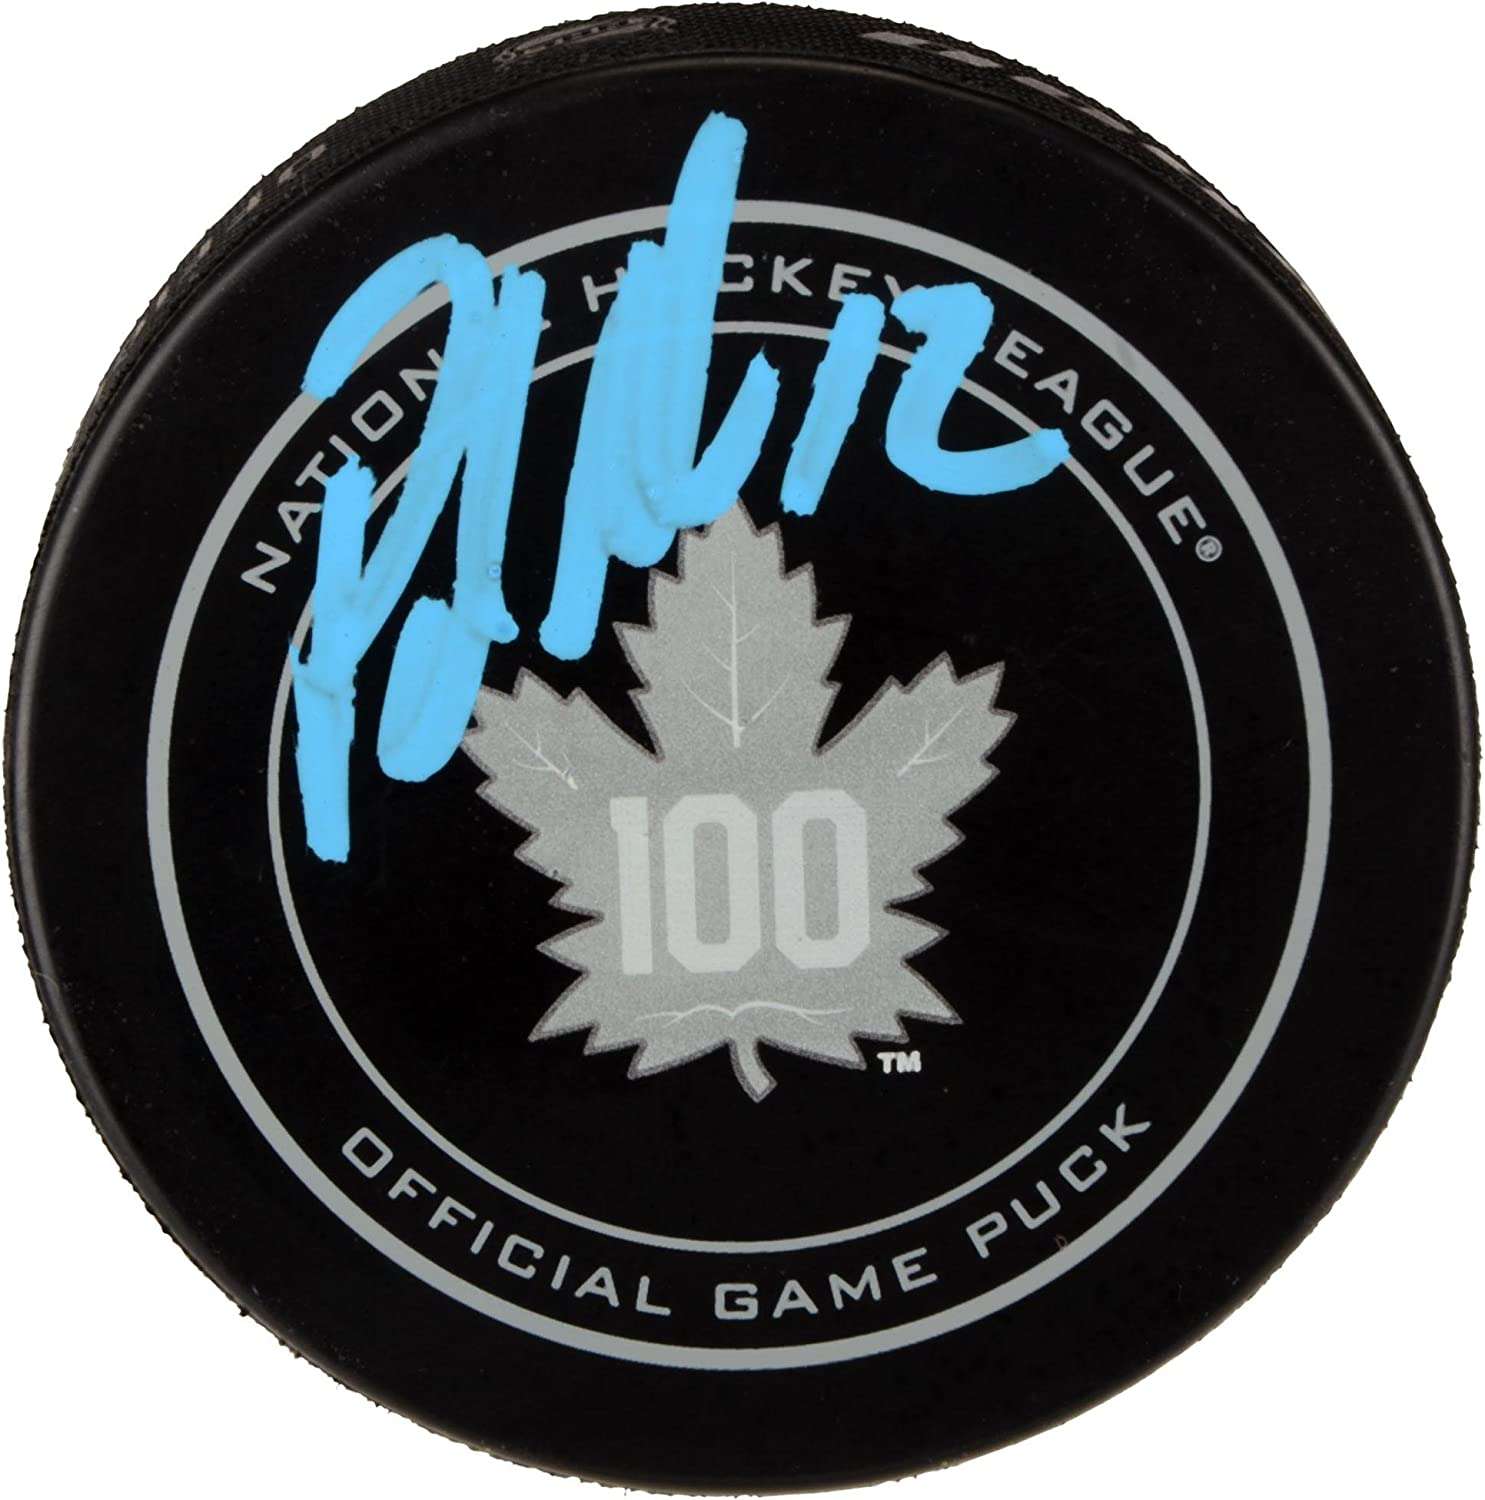 Fanatics Authentic Certified Patrick Marleau Toronto Maple Leafs Autographed 100th Anniversary Season Official Game Puck